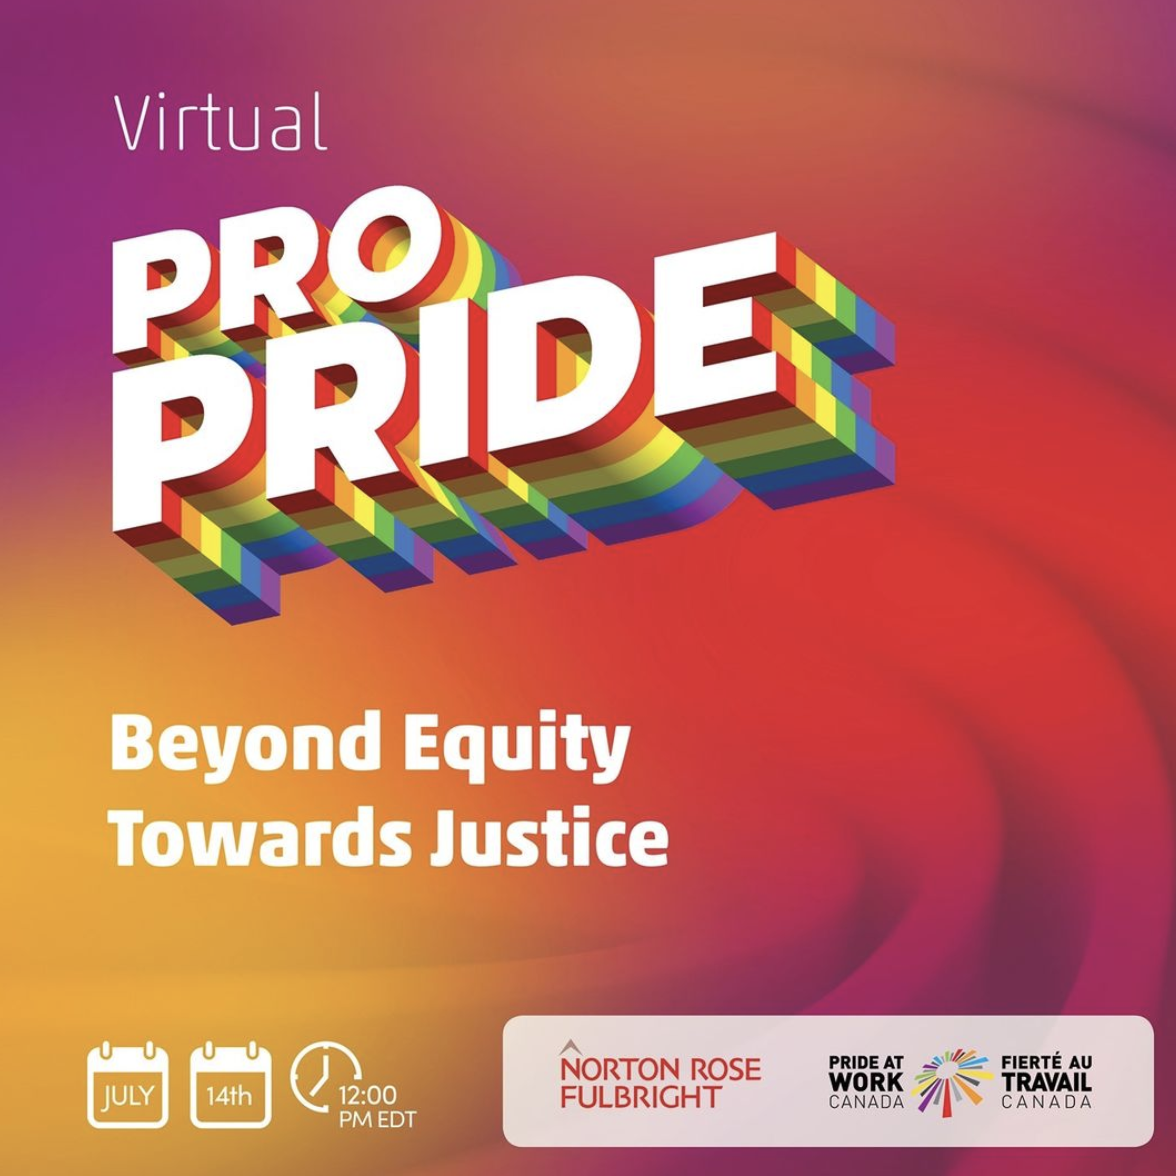 Virtual ProPride: Beyond Equity Towards Justice